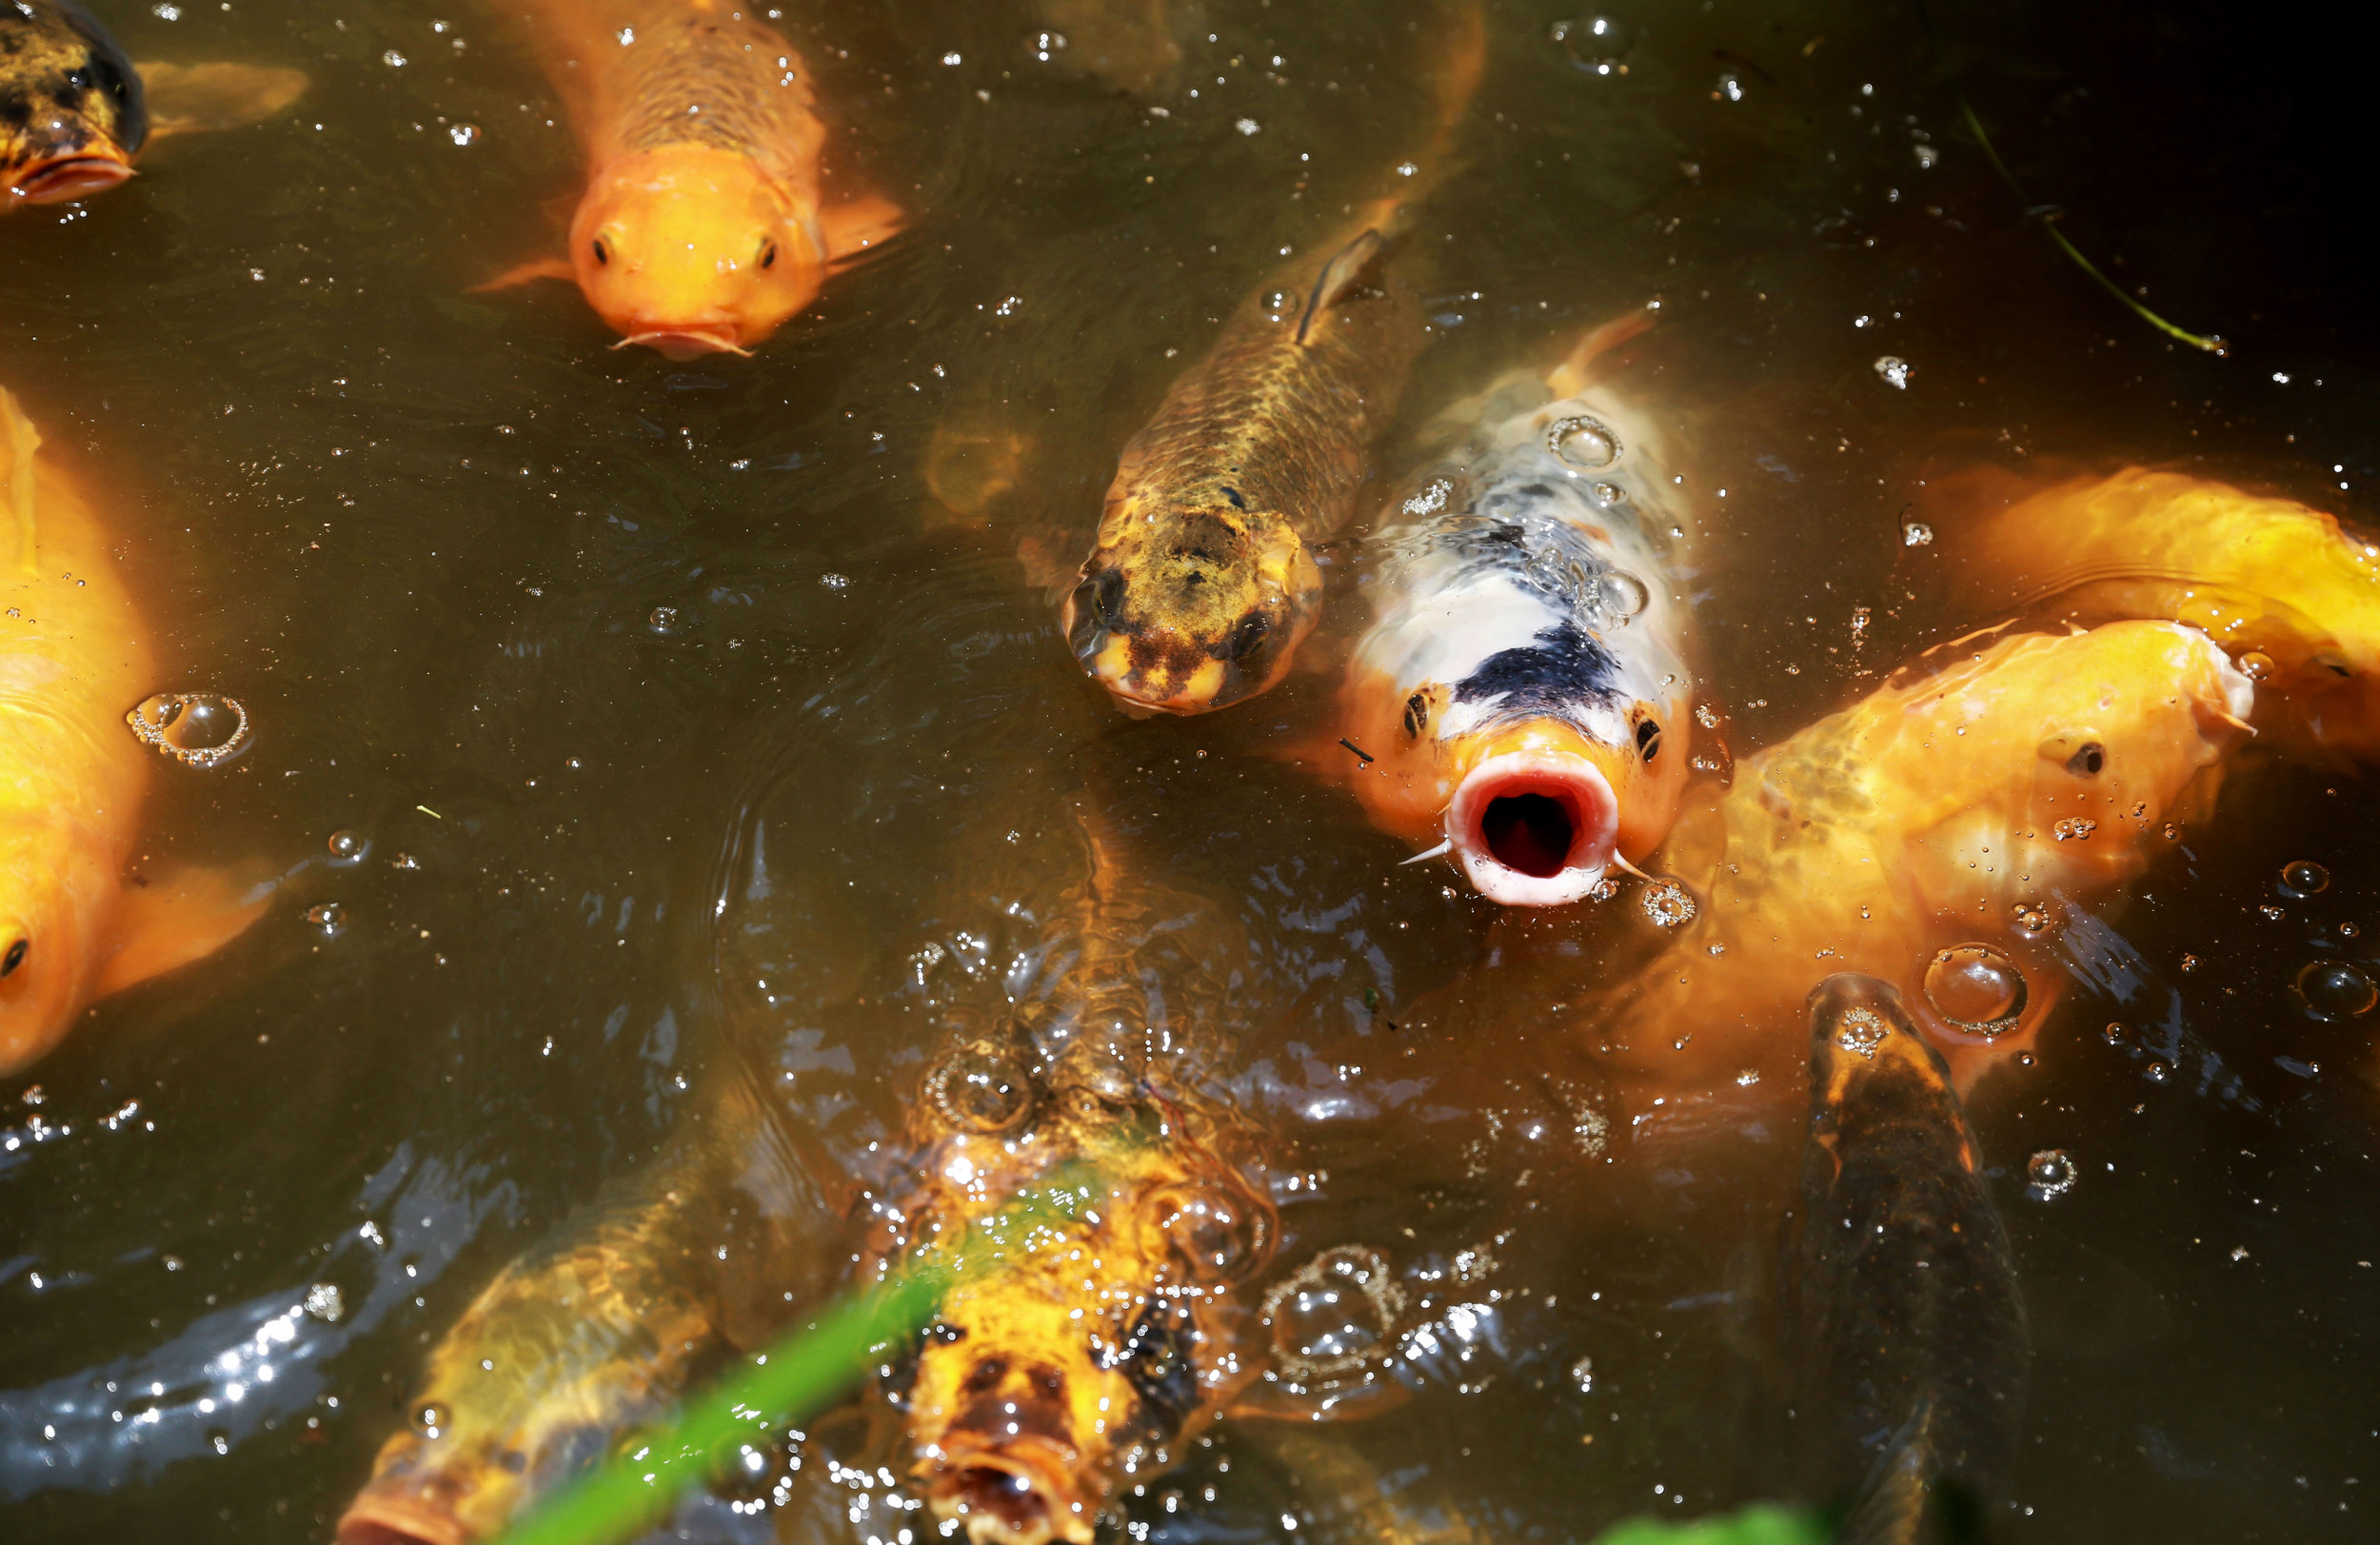 Koi fish swims in a pond at the Rakusui-en garden in Fukouka, Japan on June, 22, 2018.